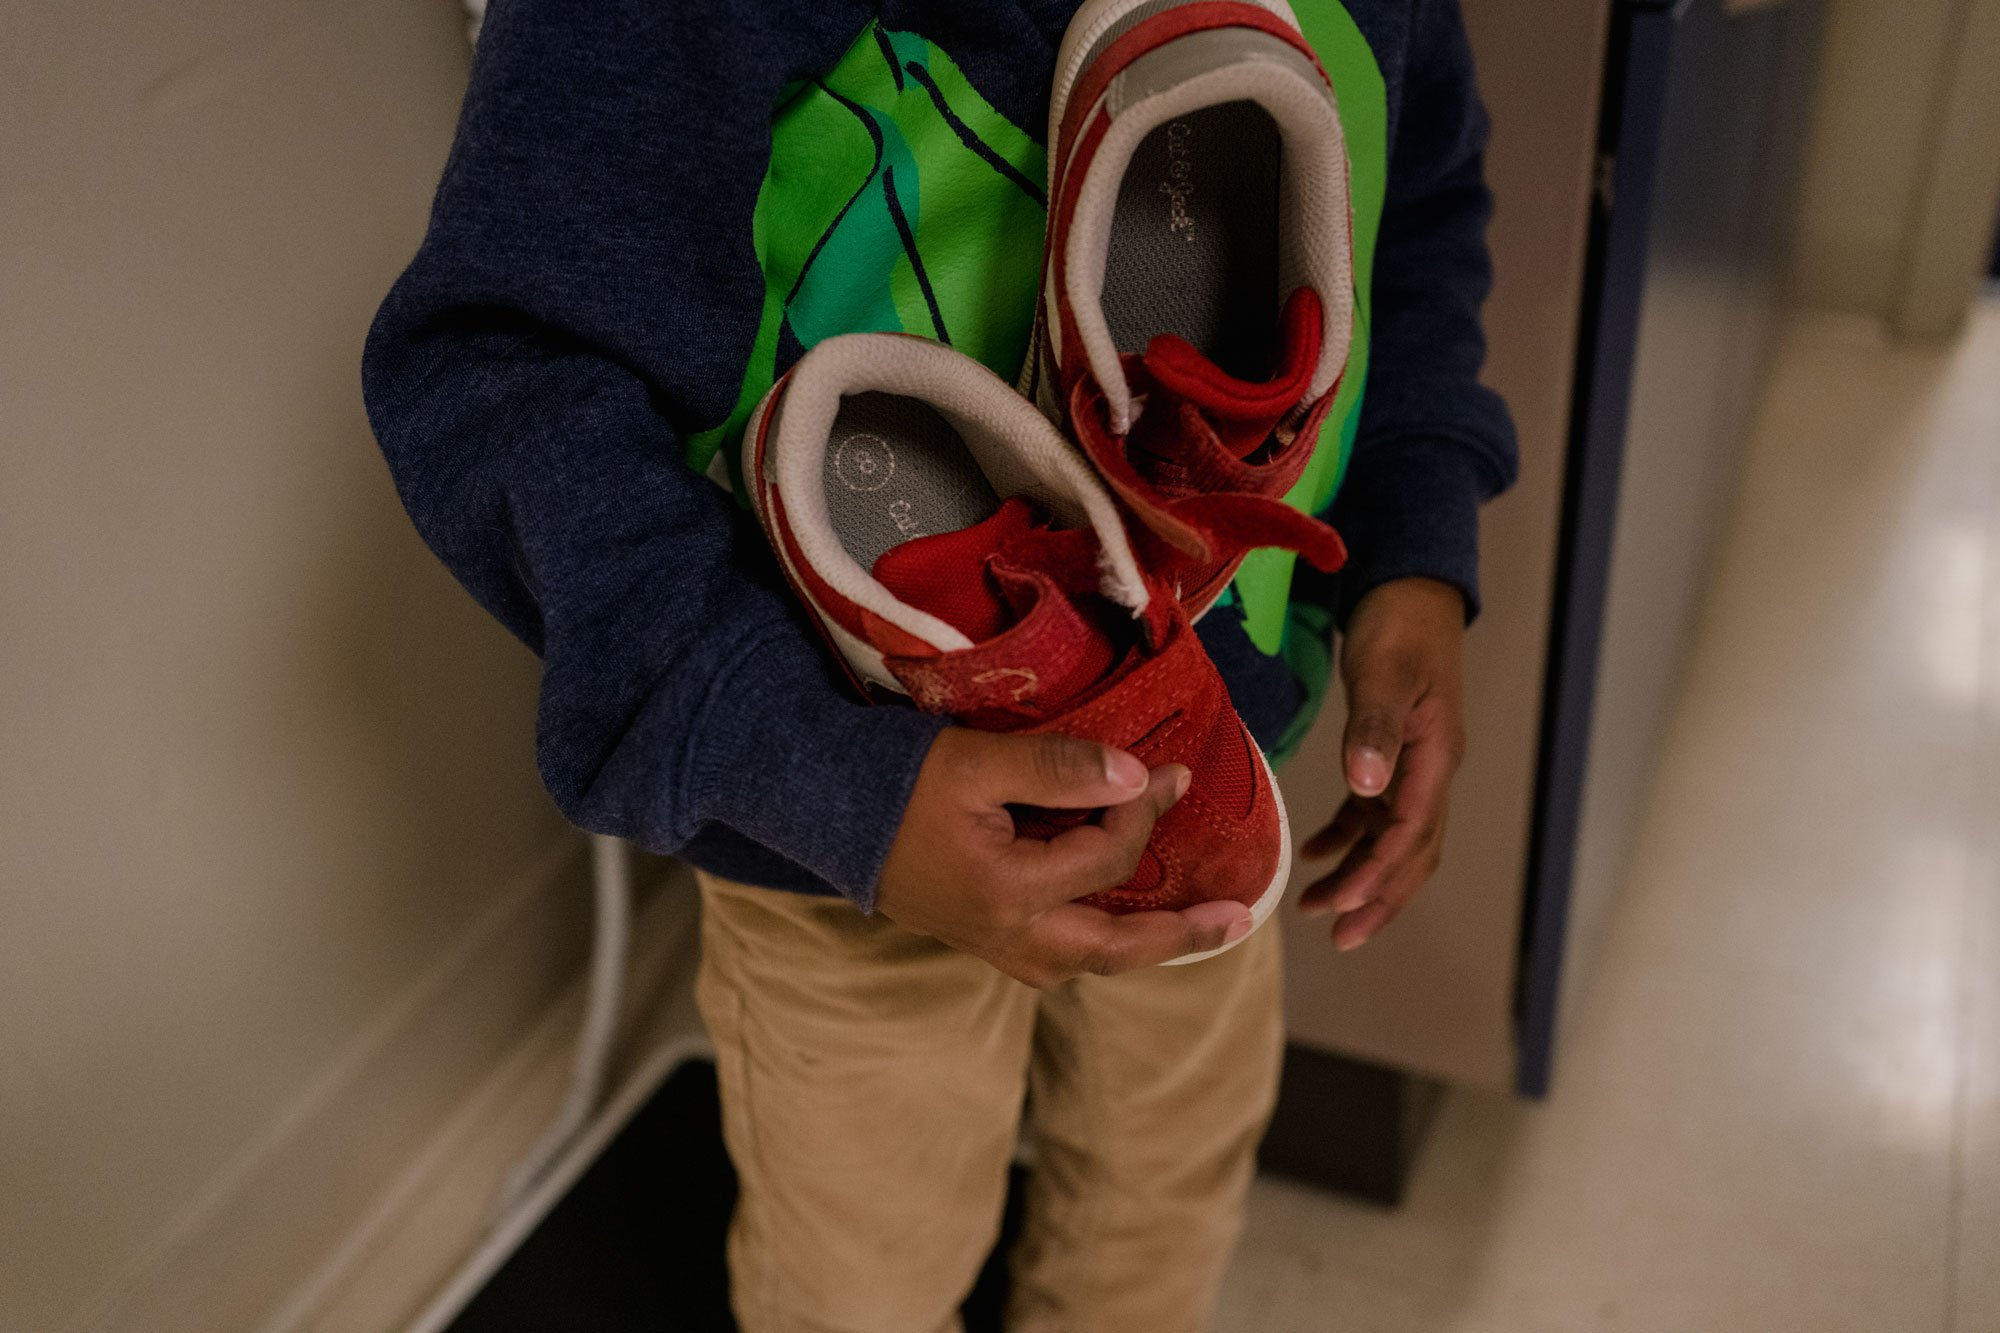 boy holding shoes while being measured